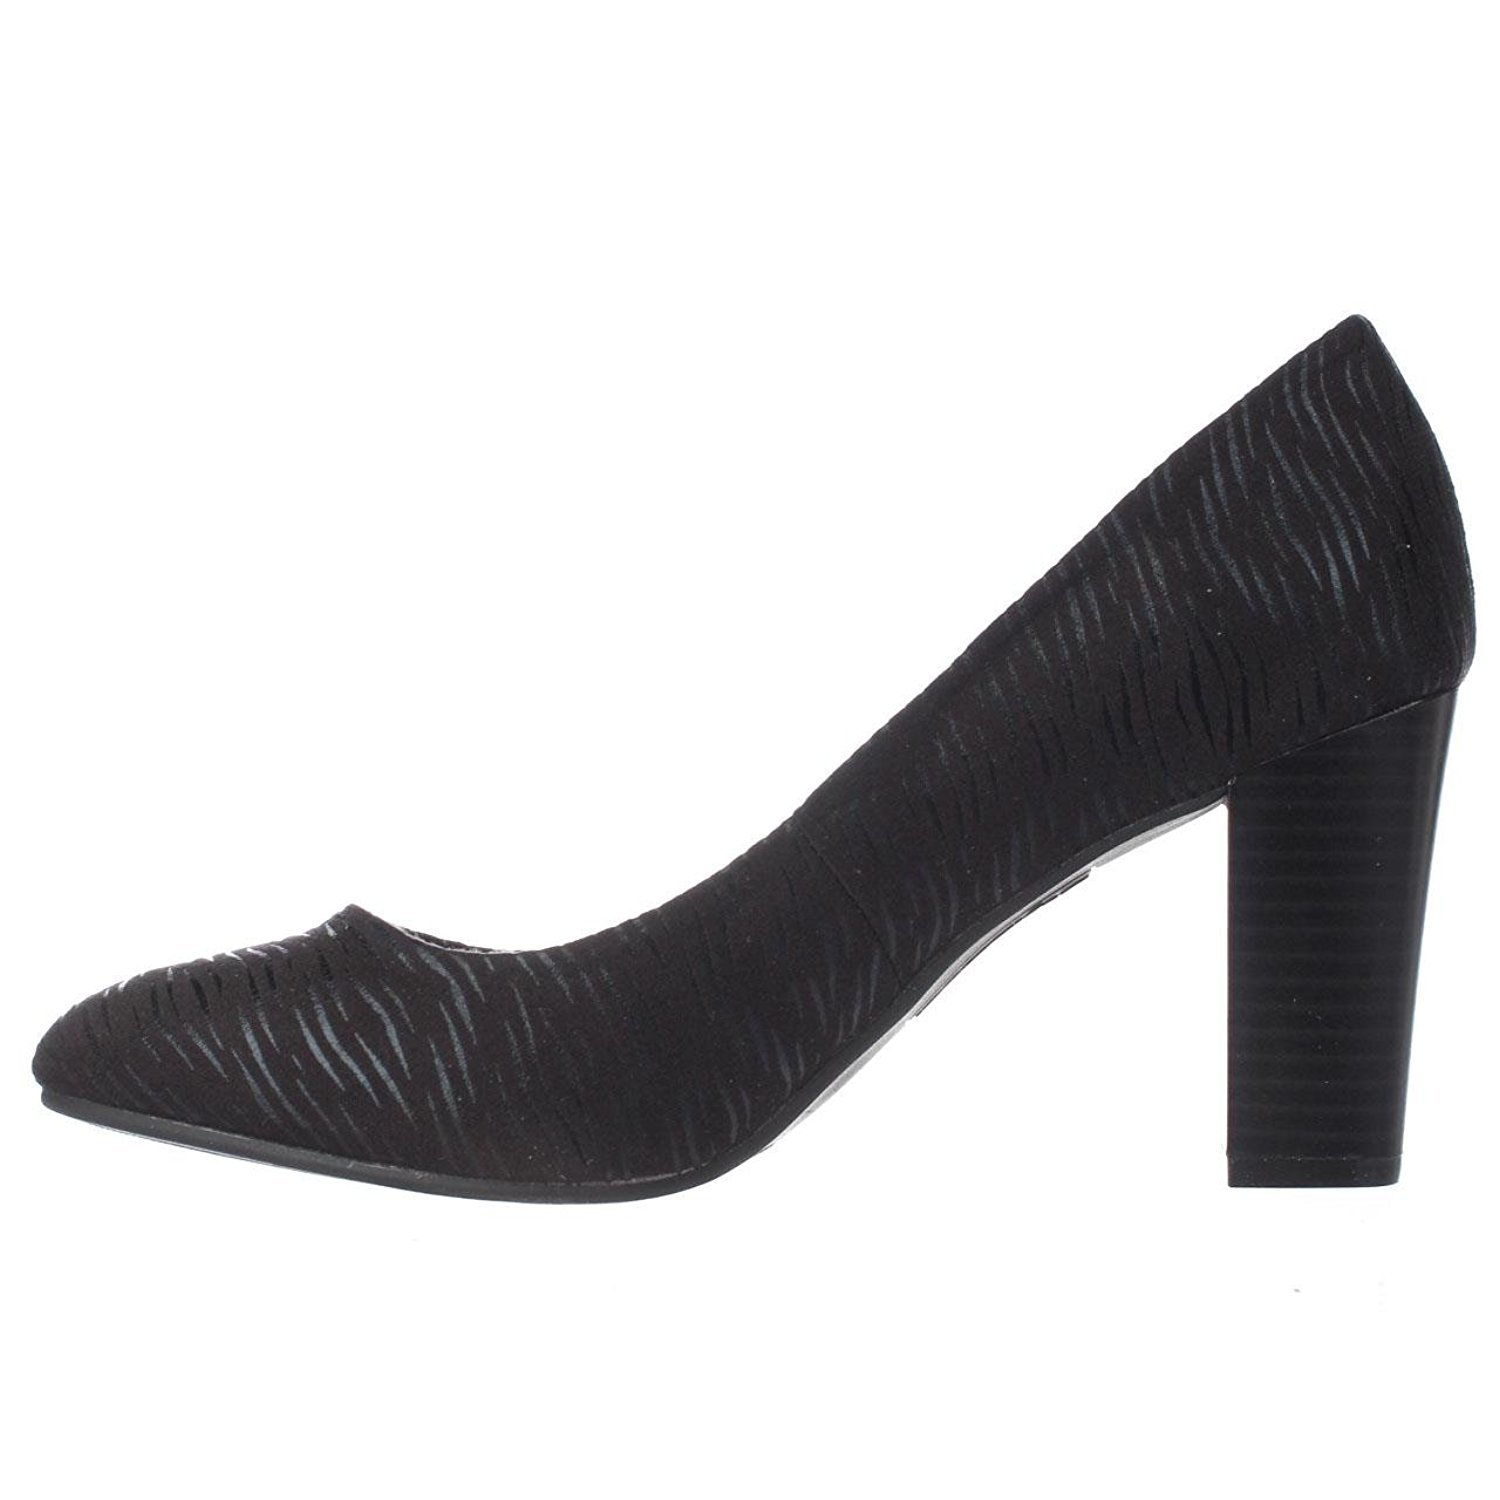 Style & Co. Womens Asyaa Closed Toe Classic Pumps, Black, Size 8.5